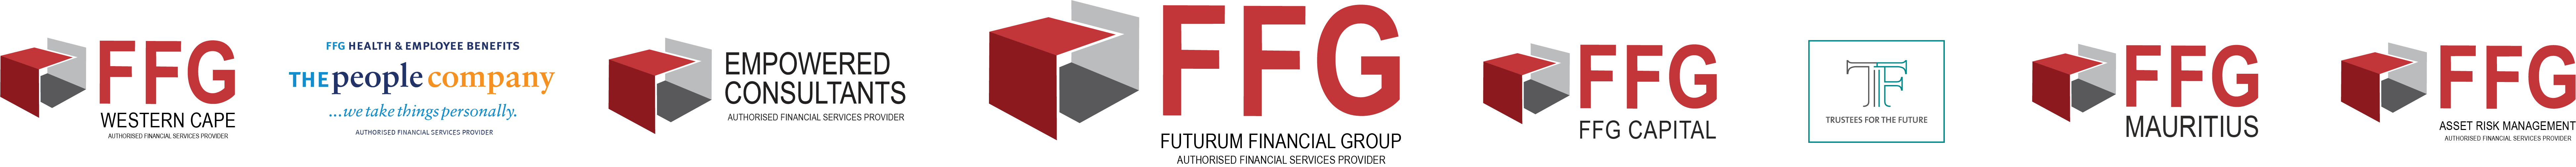 FFG | Futurum Financial Group